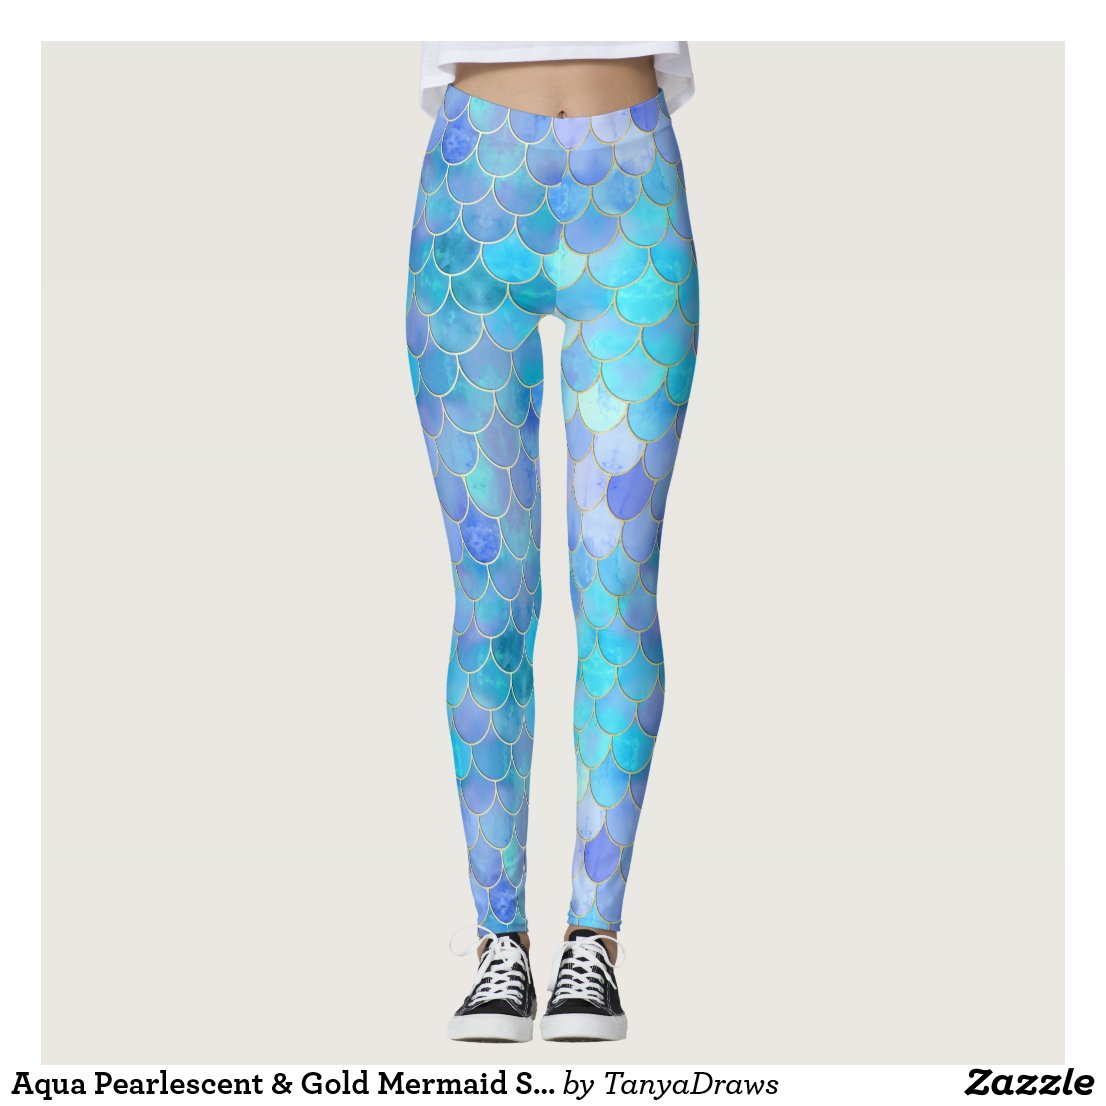 Aqua Pearlescent & Gold Mermaid Scale Pattern Leggings